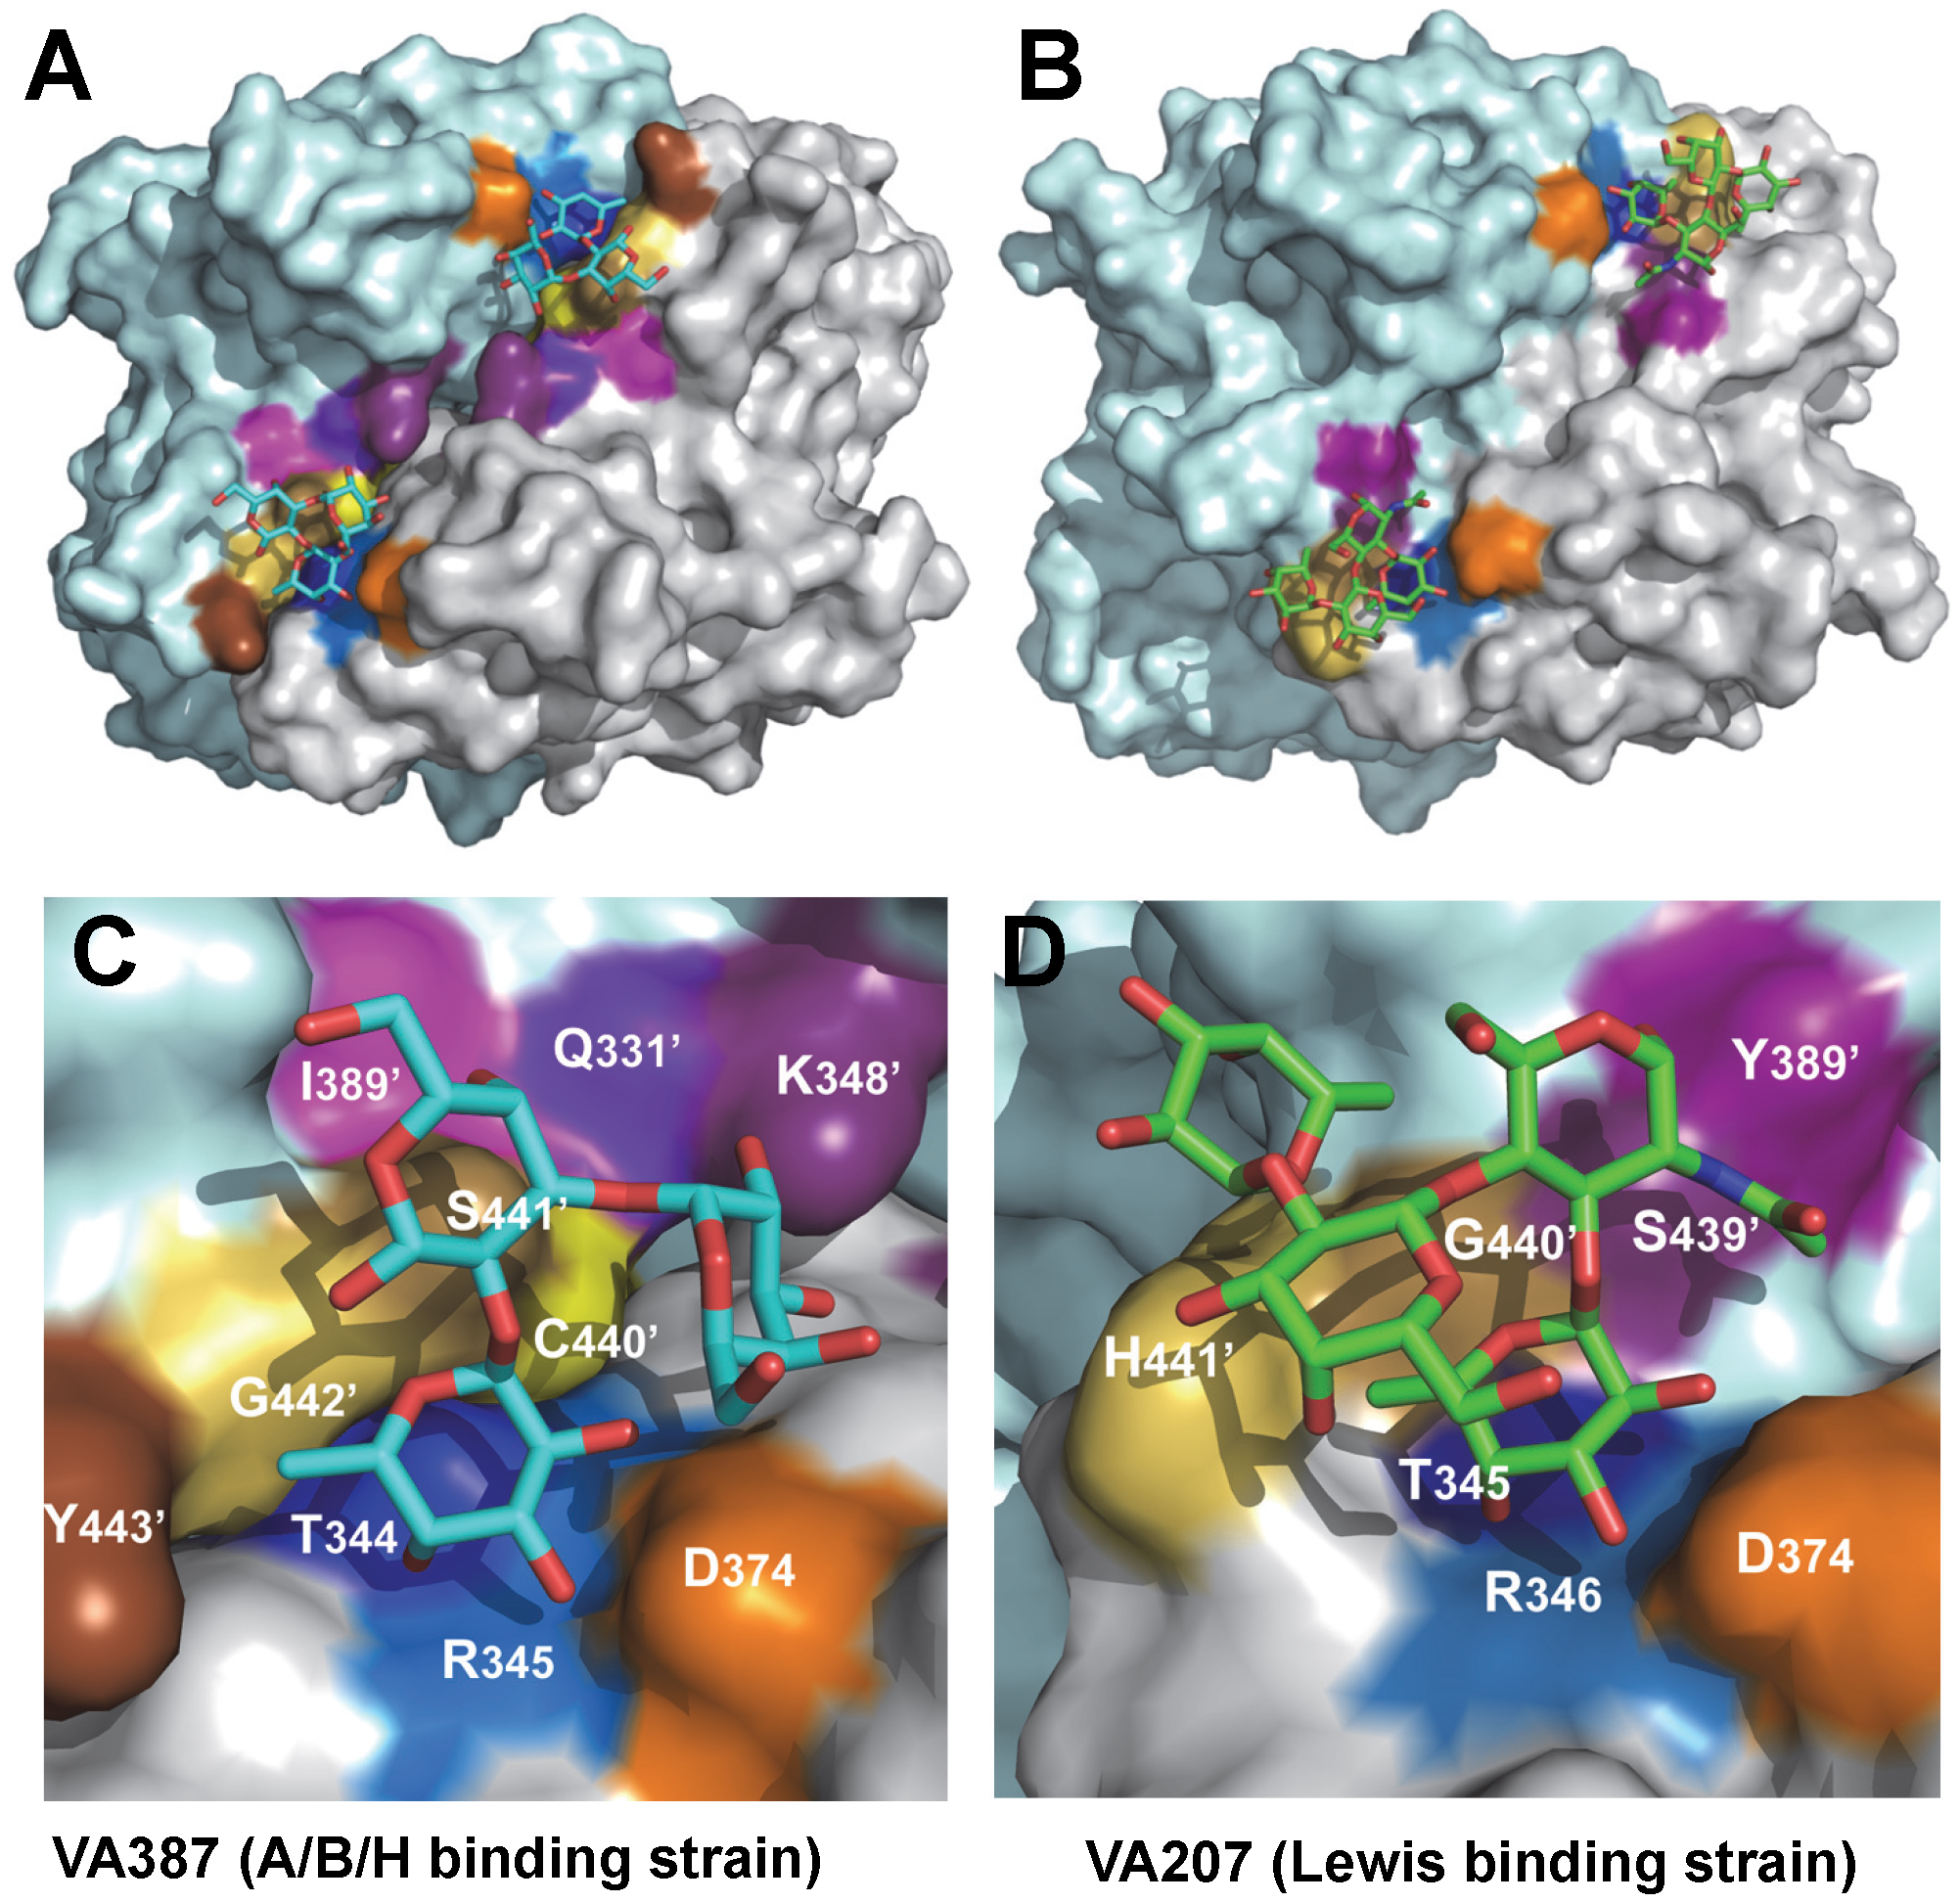 The crystal structures of the HBGA-binding interfaces of VA387 (GII.4) and VA207 (GII.9).